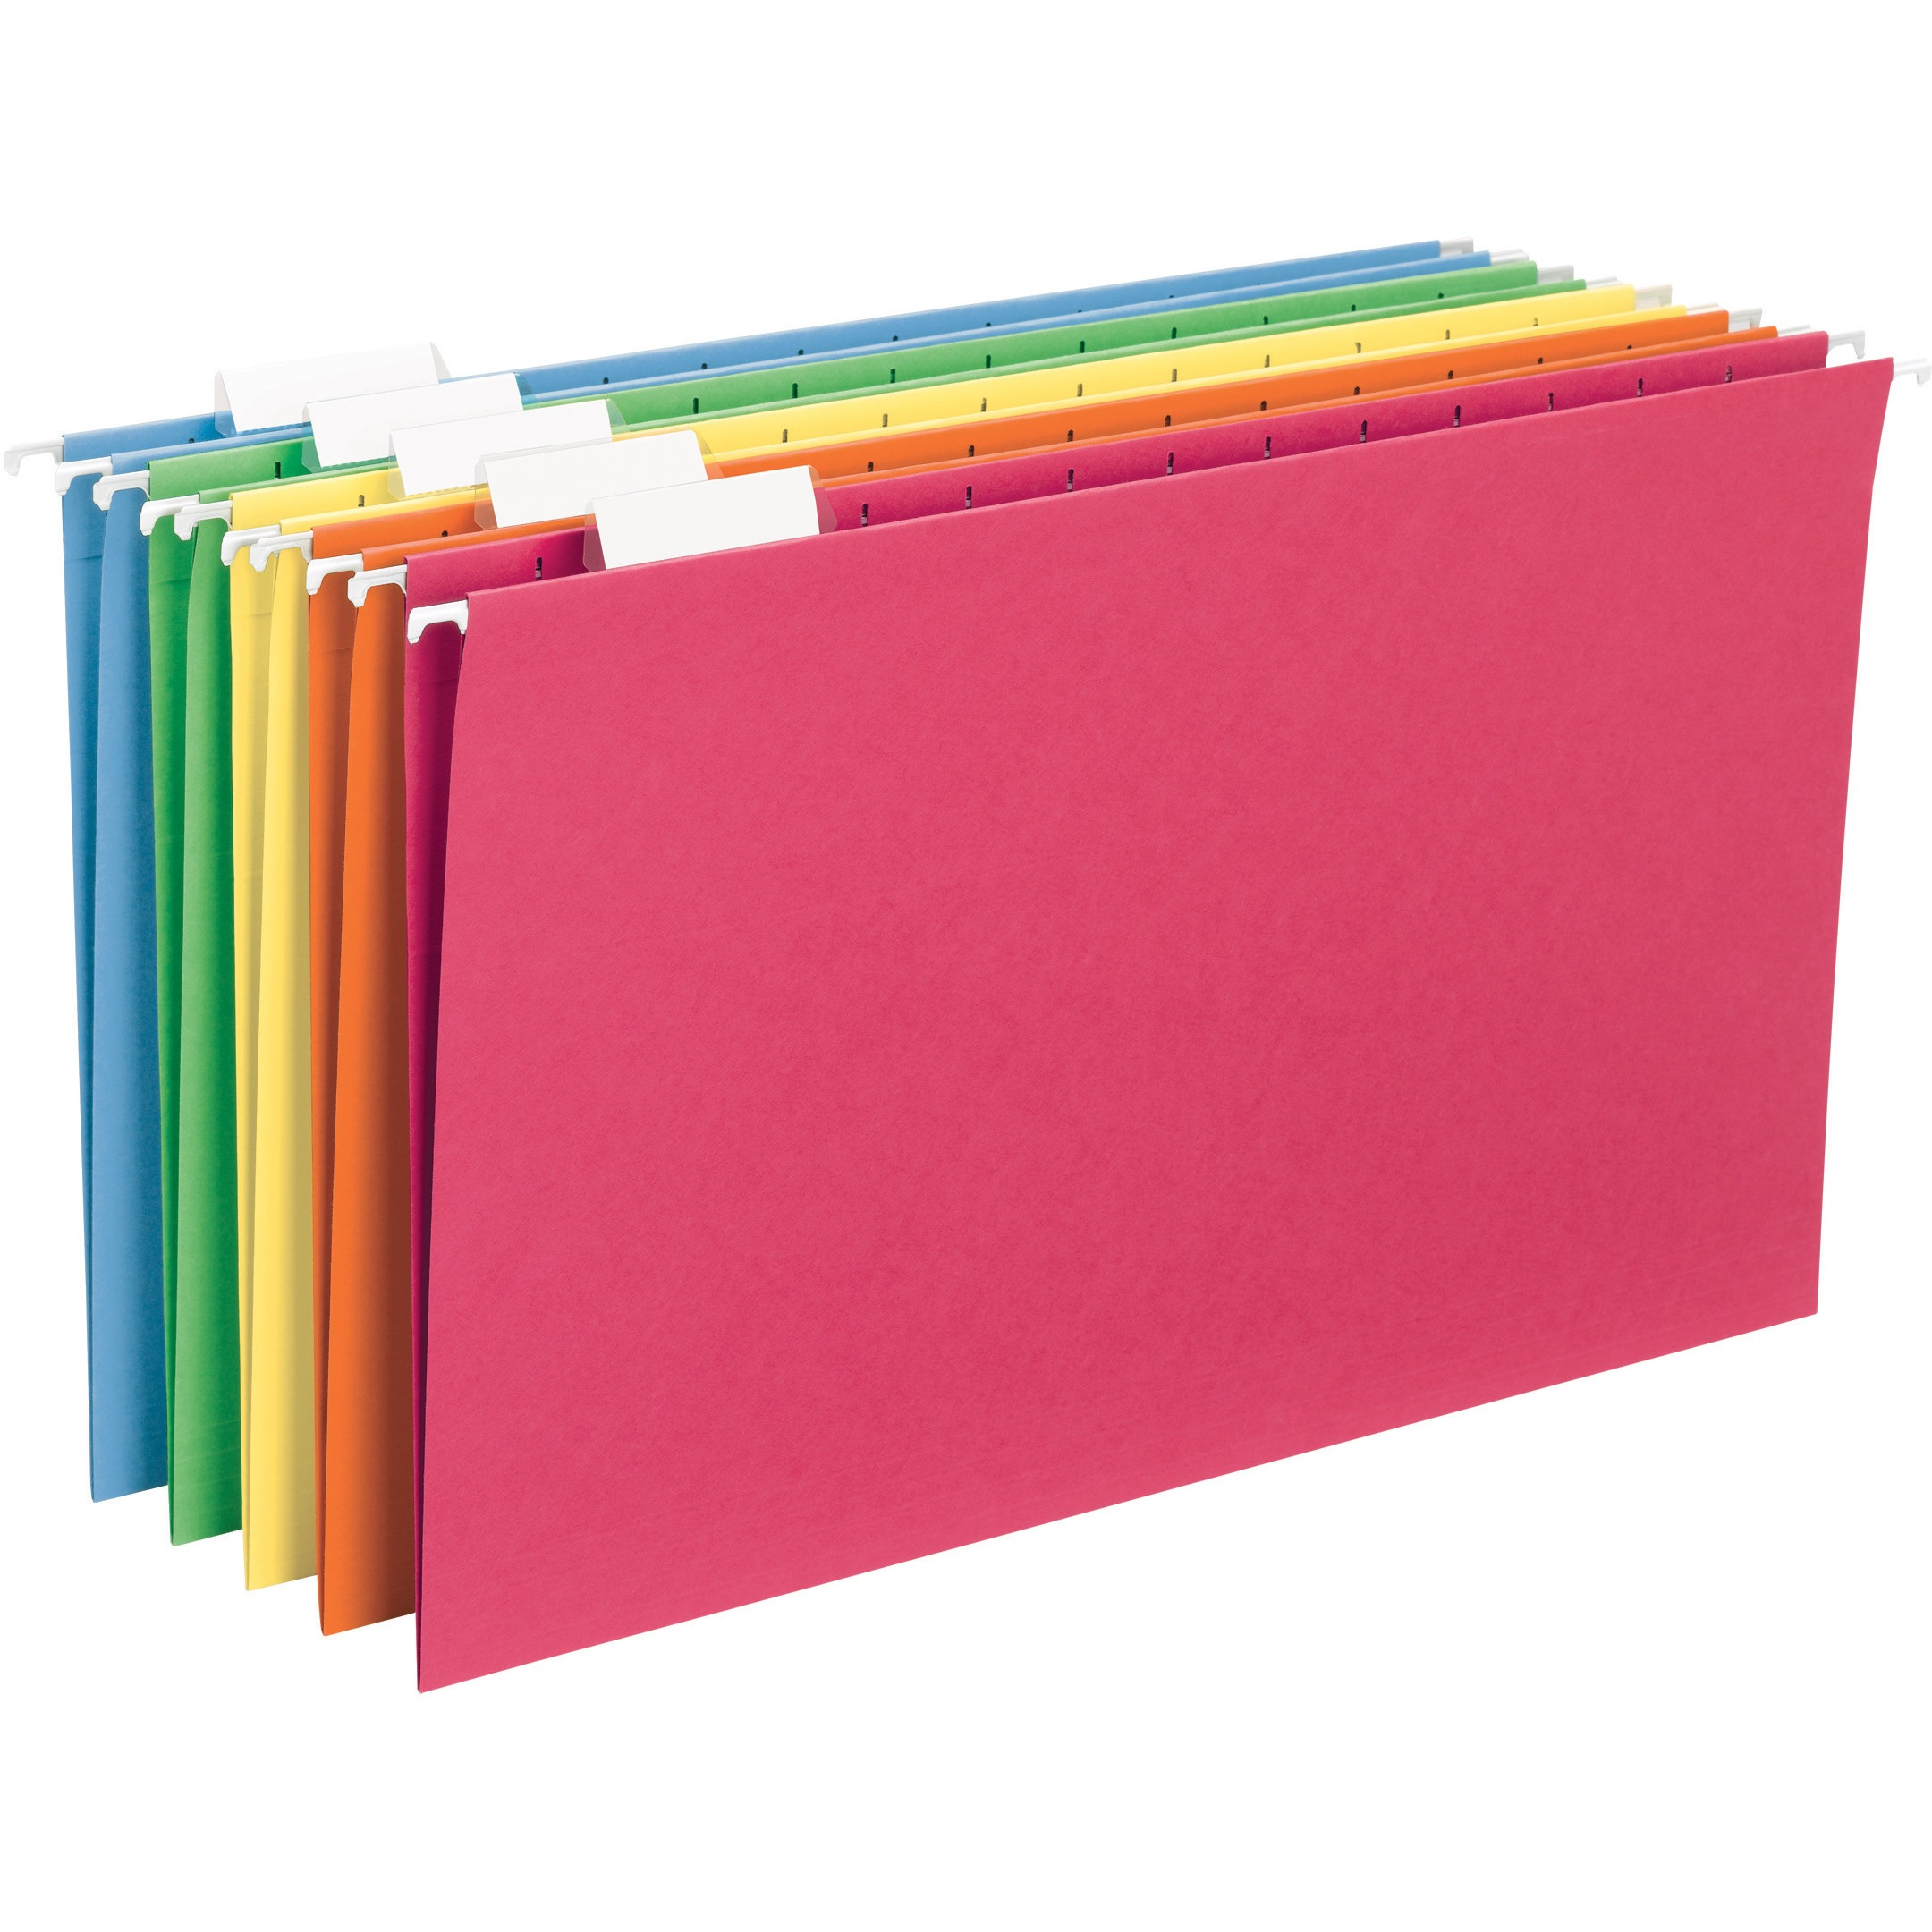 Smead Hanging File Folder, 1/5 Tab, Assorted Colors, Legal Size, 25/Box